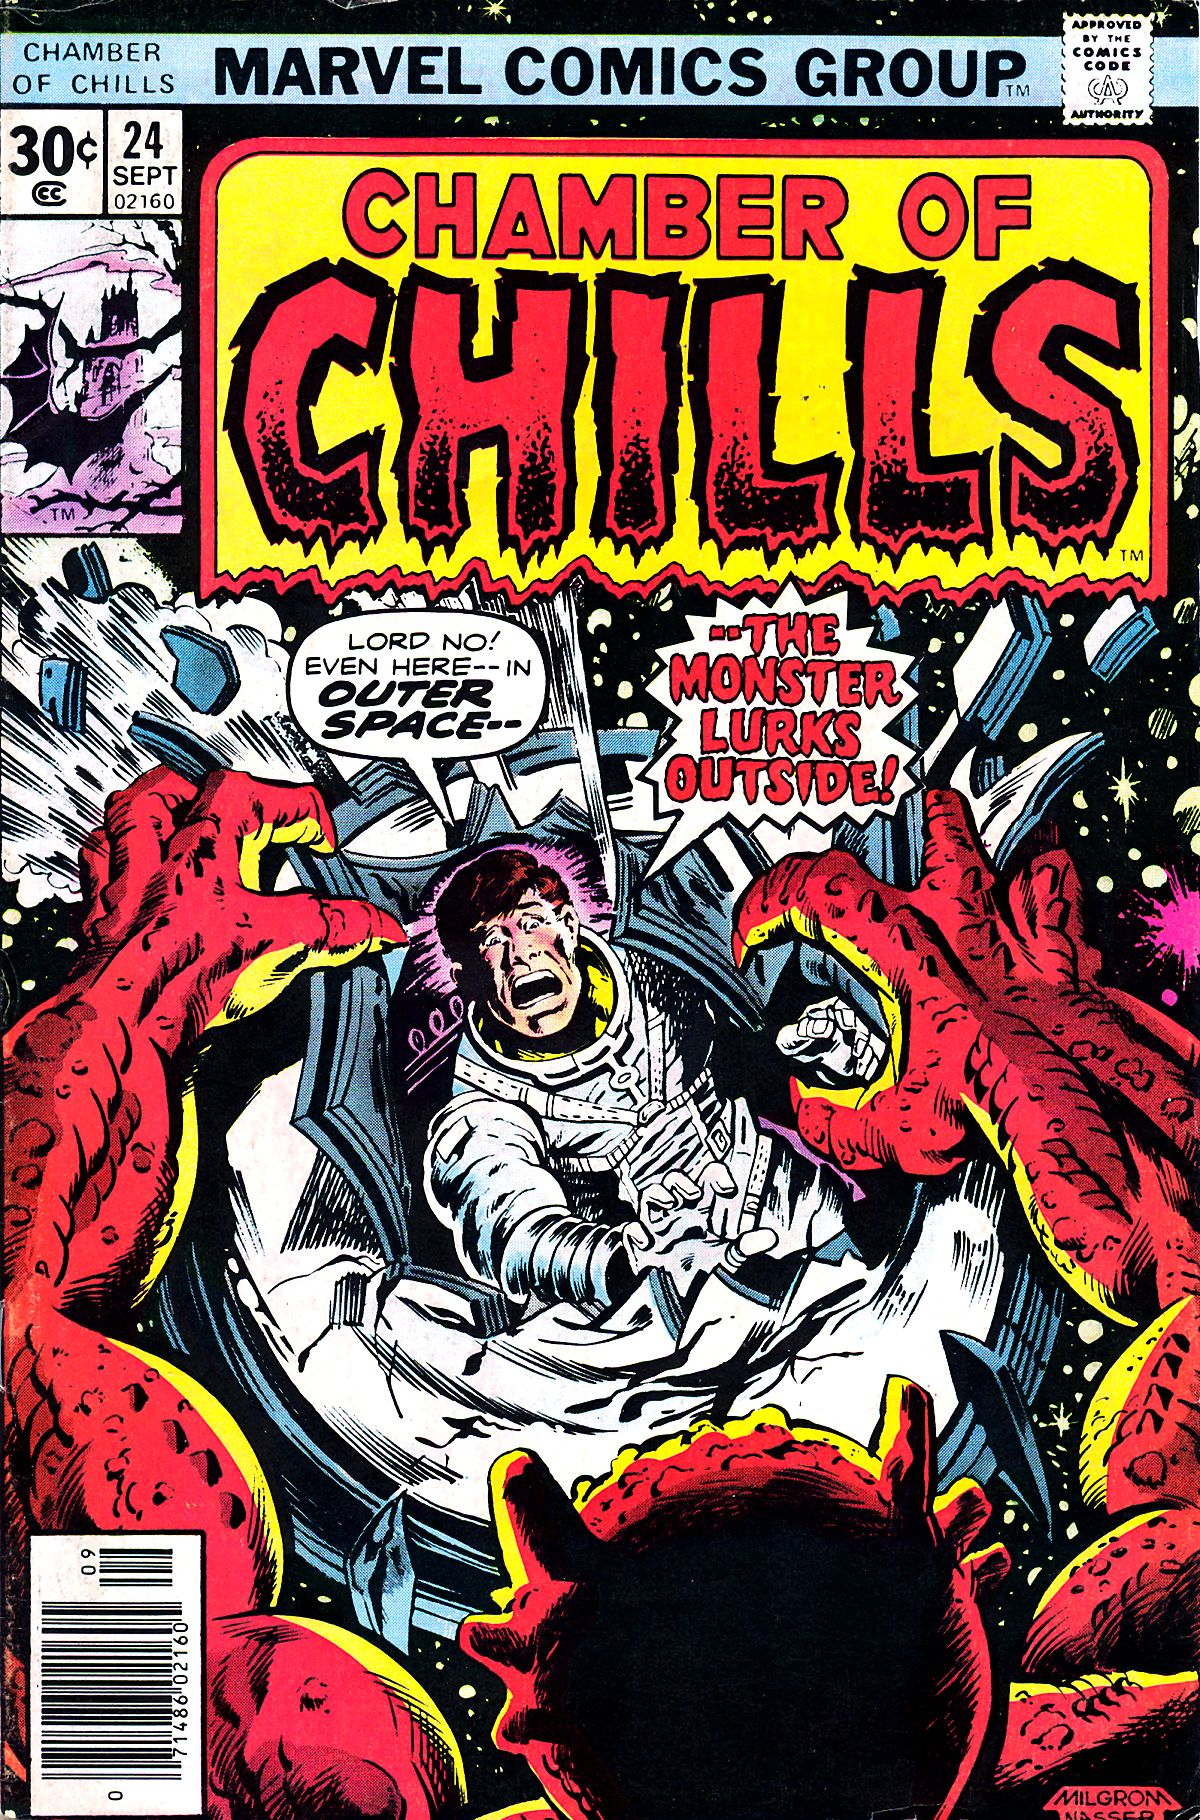 Chamber of Chills (1972) #24, cover penciled by Al Milgrom & inked by Mike Nasser.